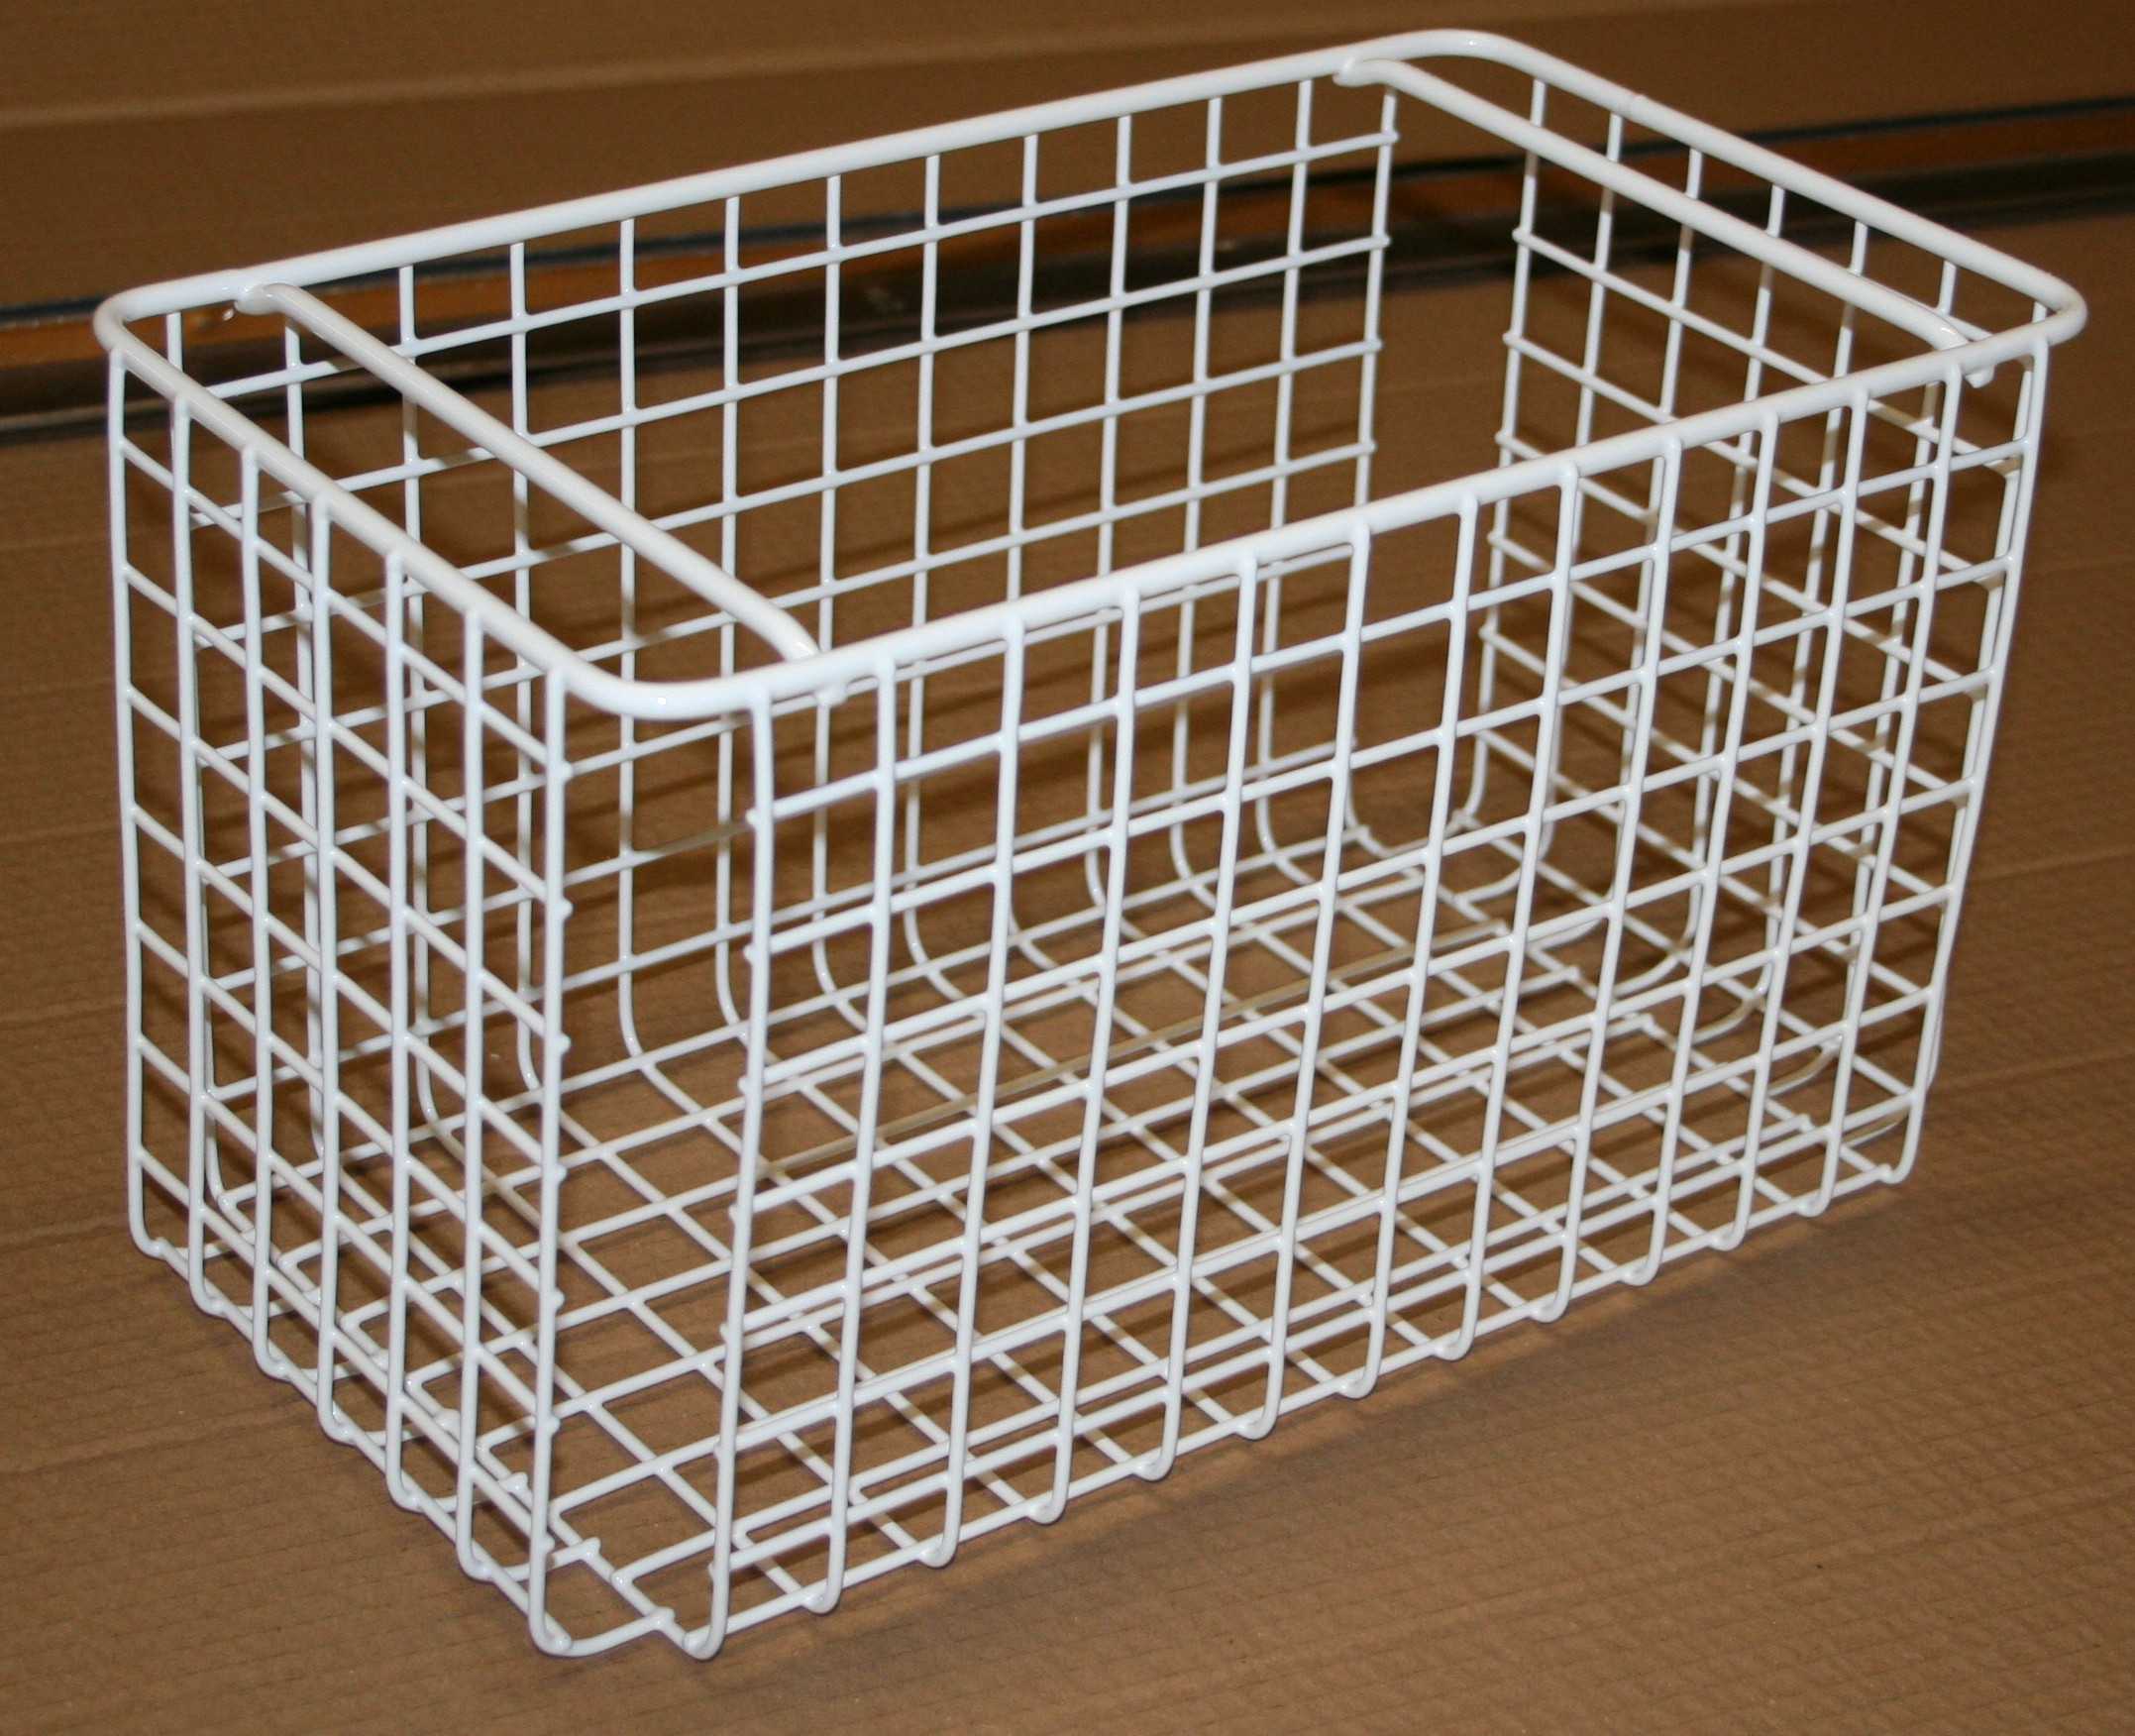 http://hamsterbaskets.co.uk/wp-content/uploads/2015/05/Baskets-Single-Freezer-e1431865716815.jpg